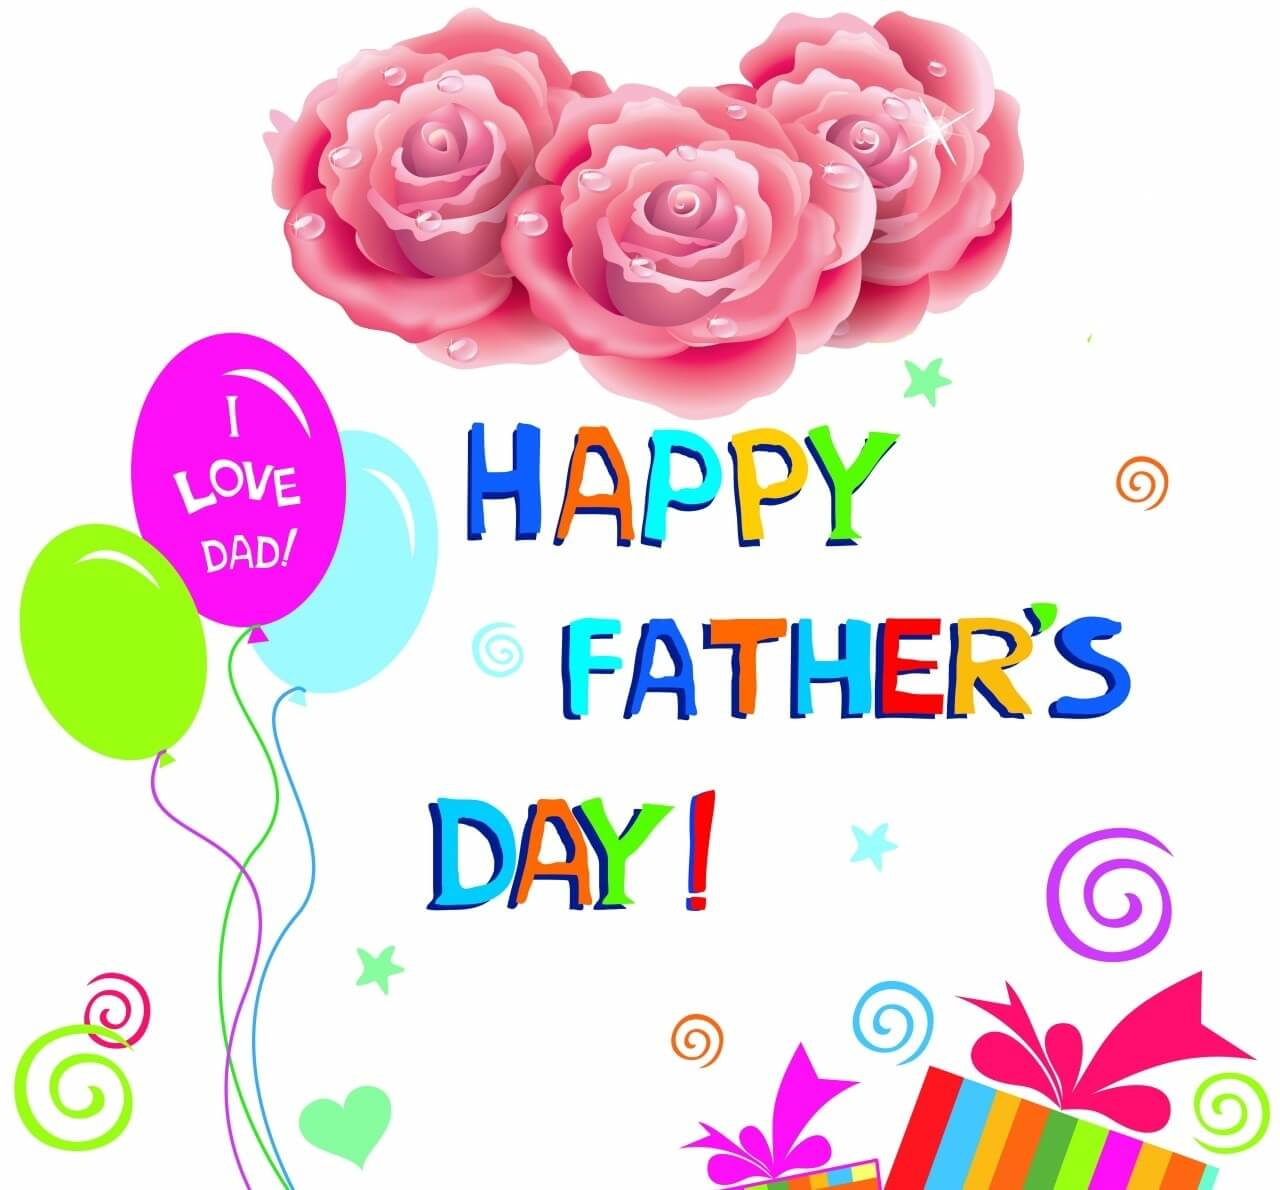 Happy Fathers Day Images Quotes, Wishes, Messages, Greetings 2020 3